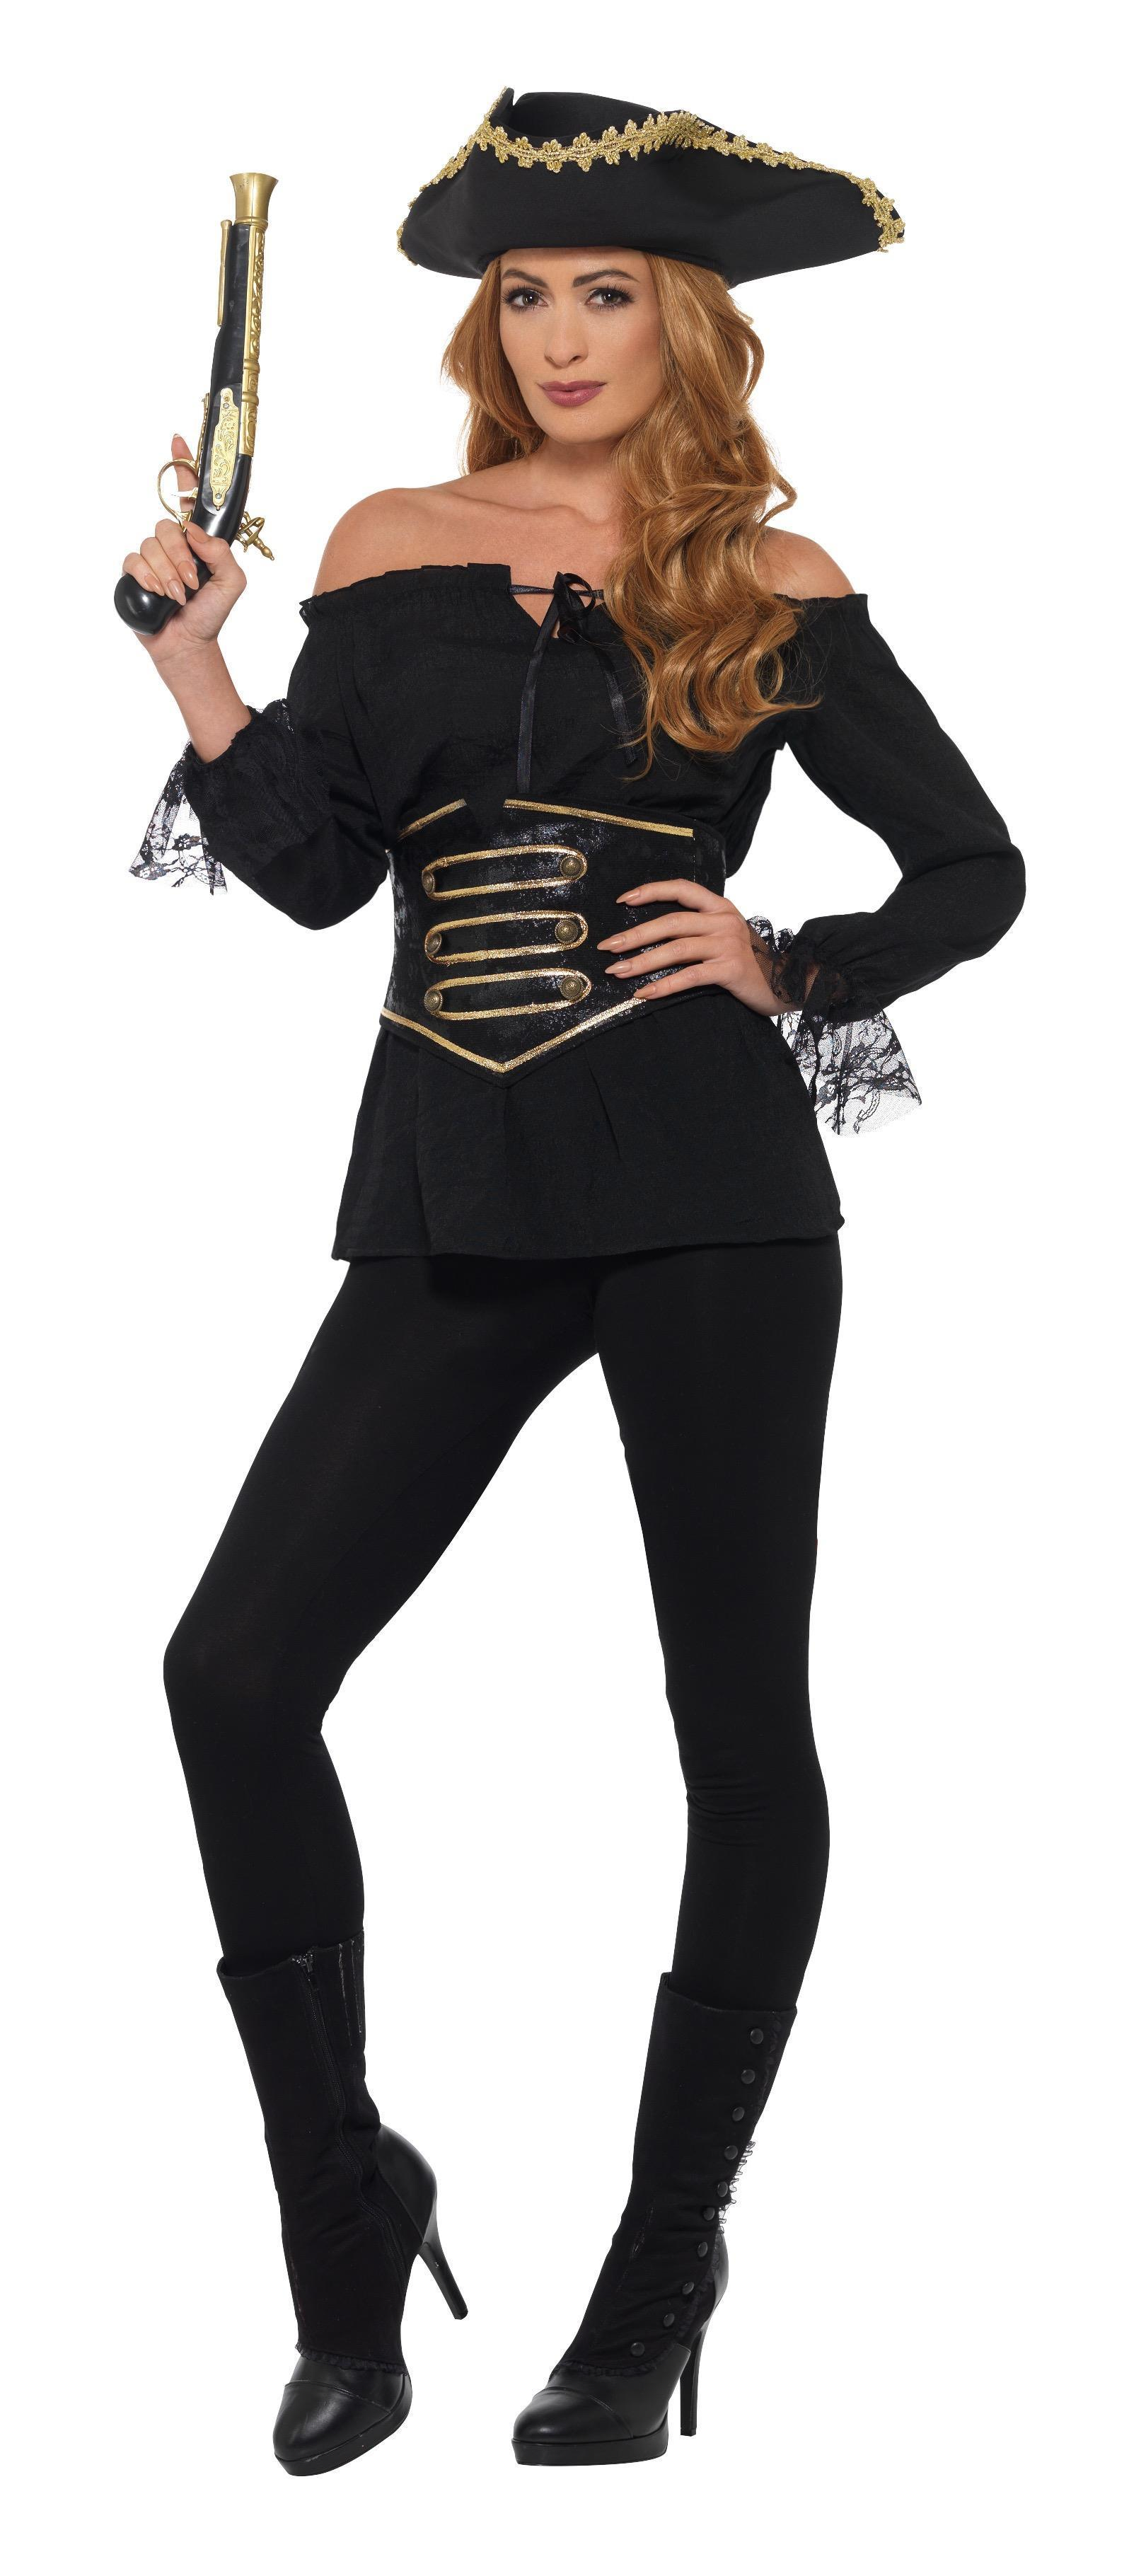 Deluxe Pirate Shirt Ladies Black